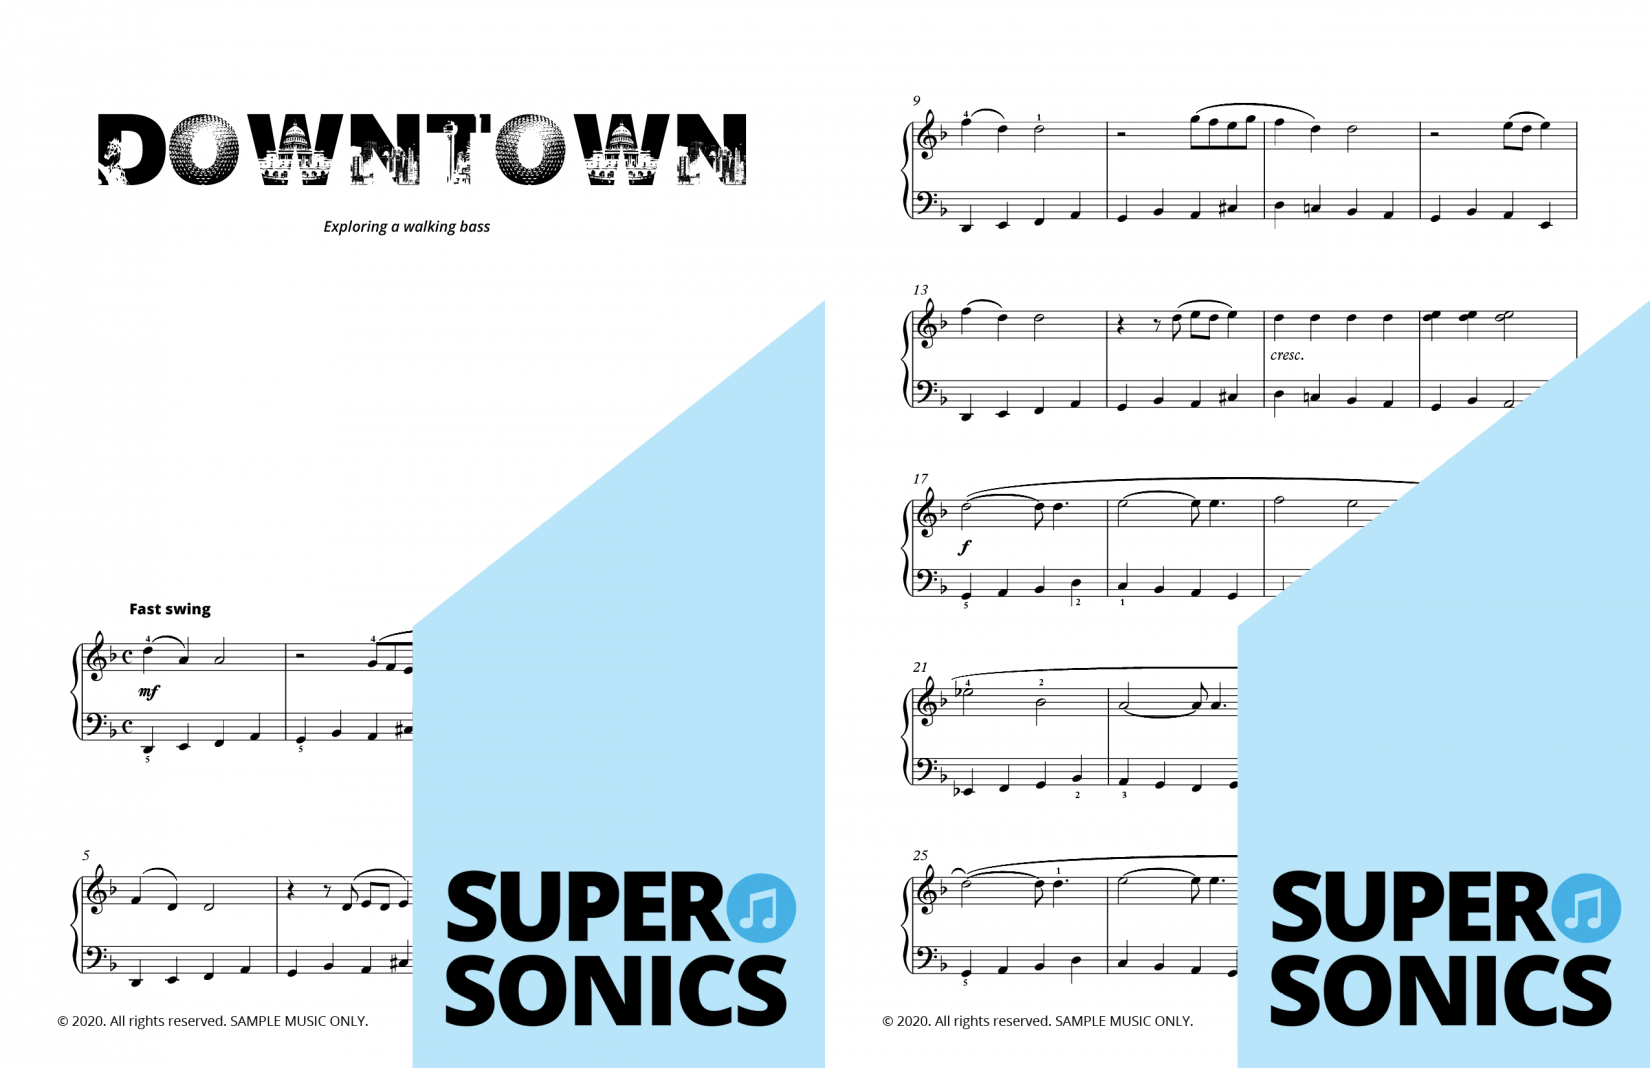 Supersonics Piano Method Level 4 Jazzy sample